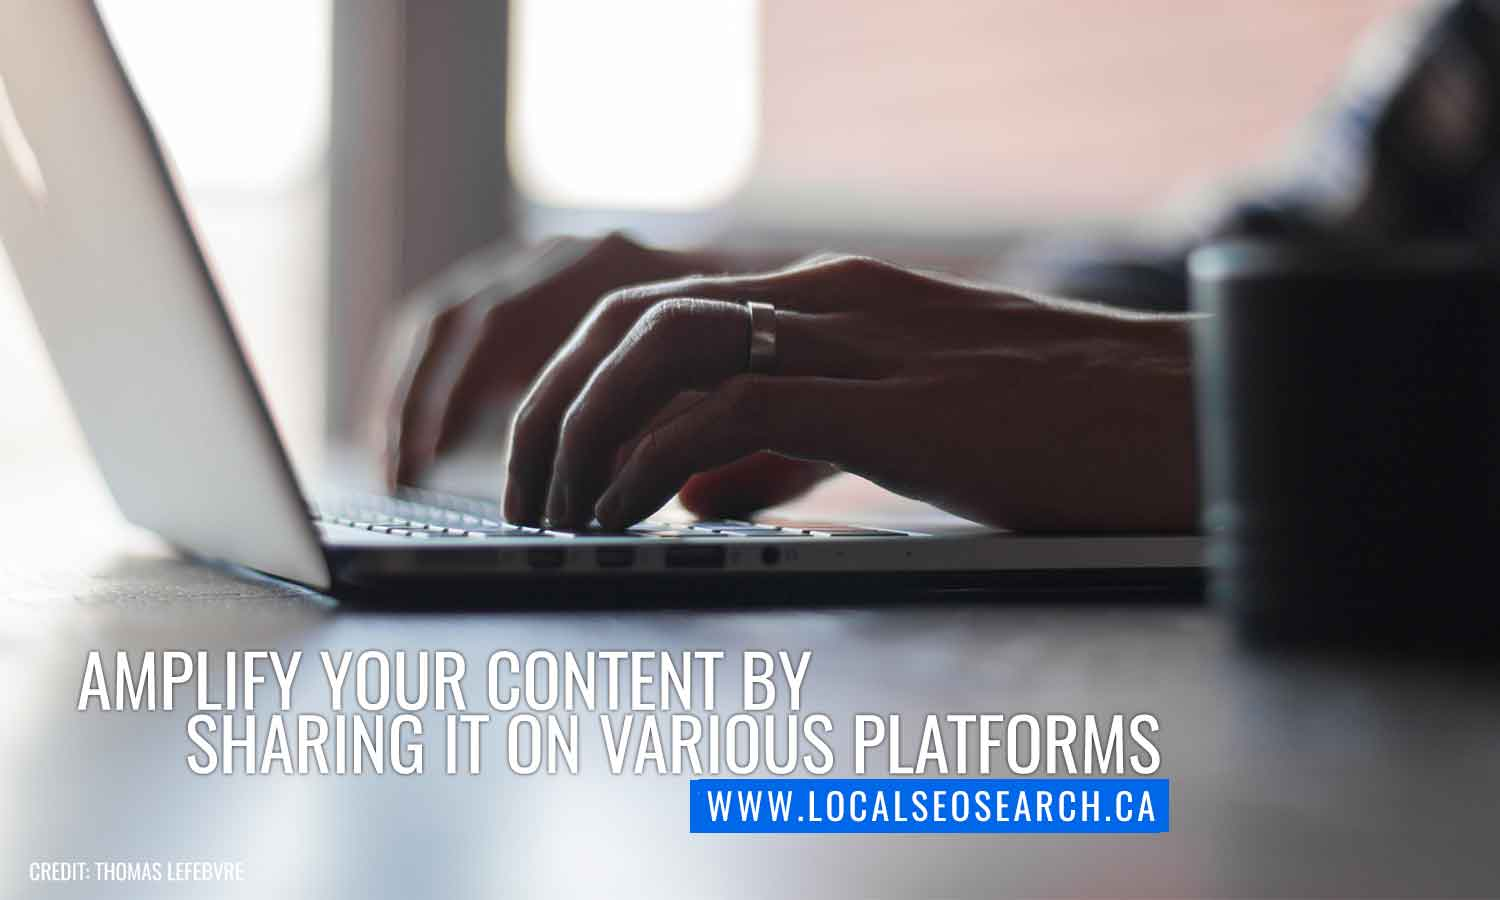 Amplify your content by sharing it on various platforms